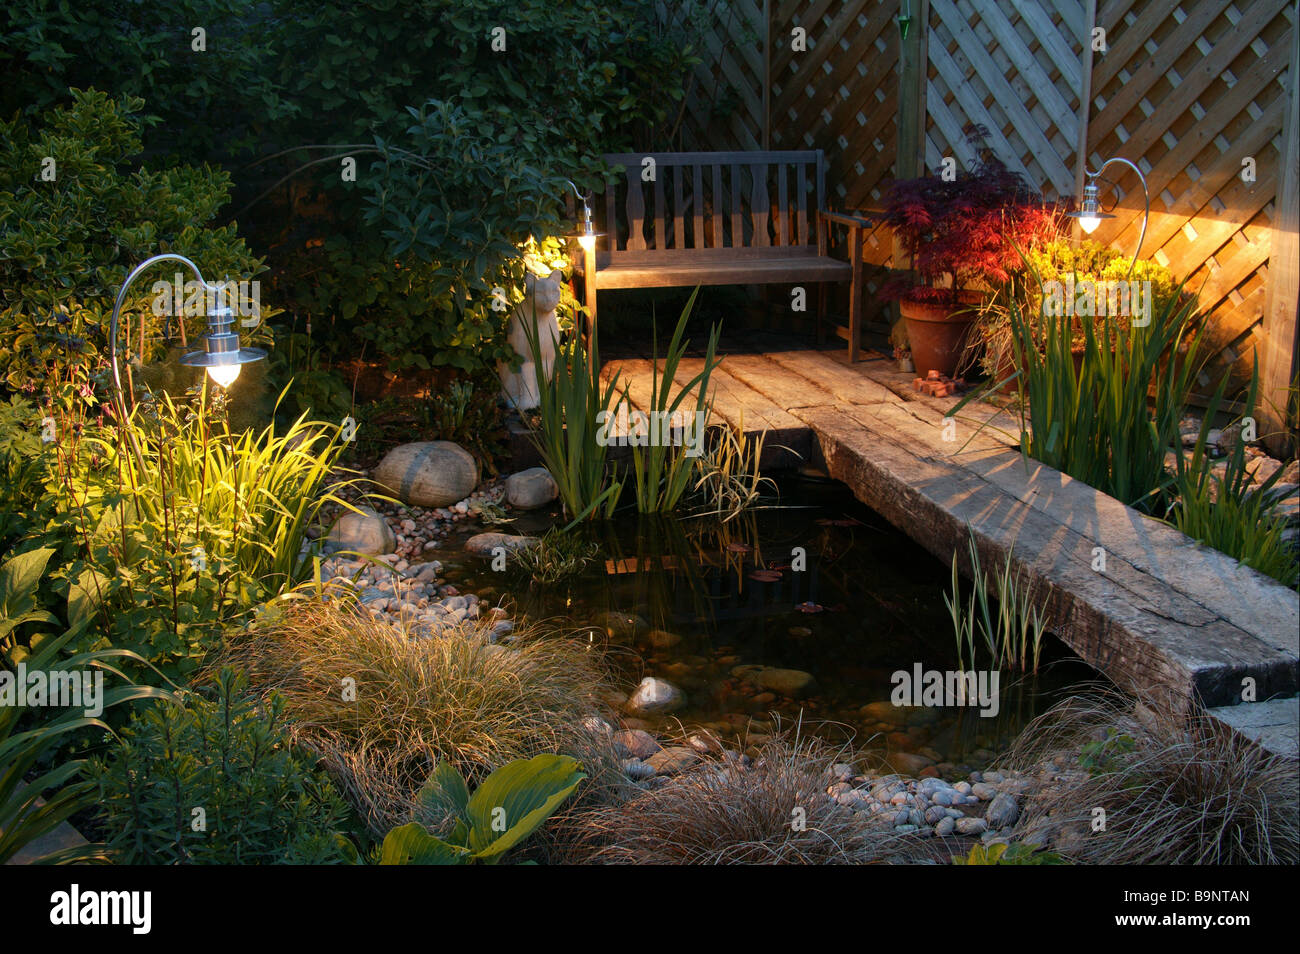 Early evening british garden in the summer, features a pond, garden chair, lights and stone detail. - Stock Image